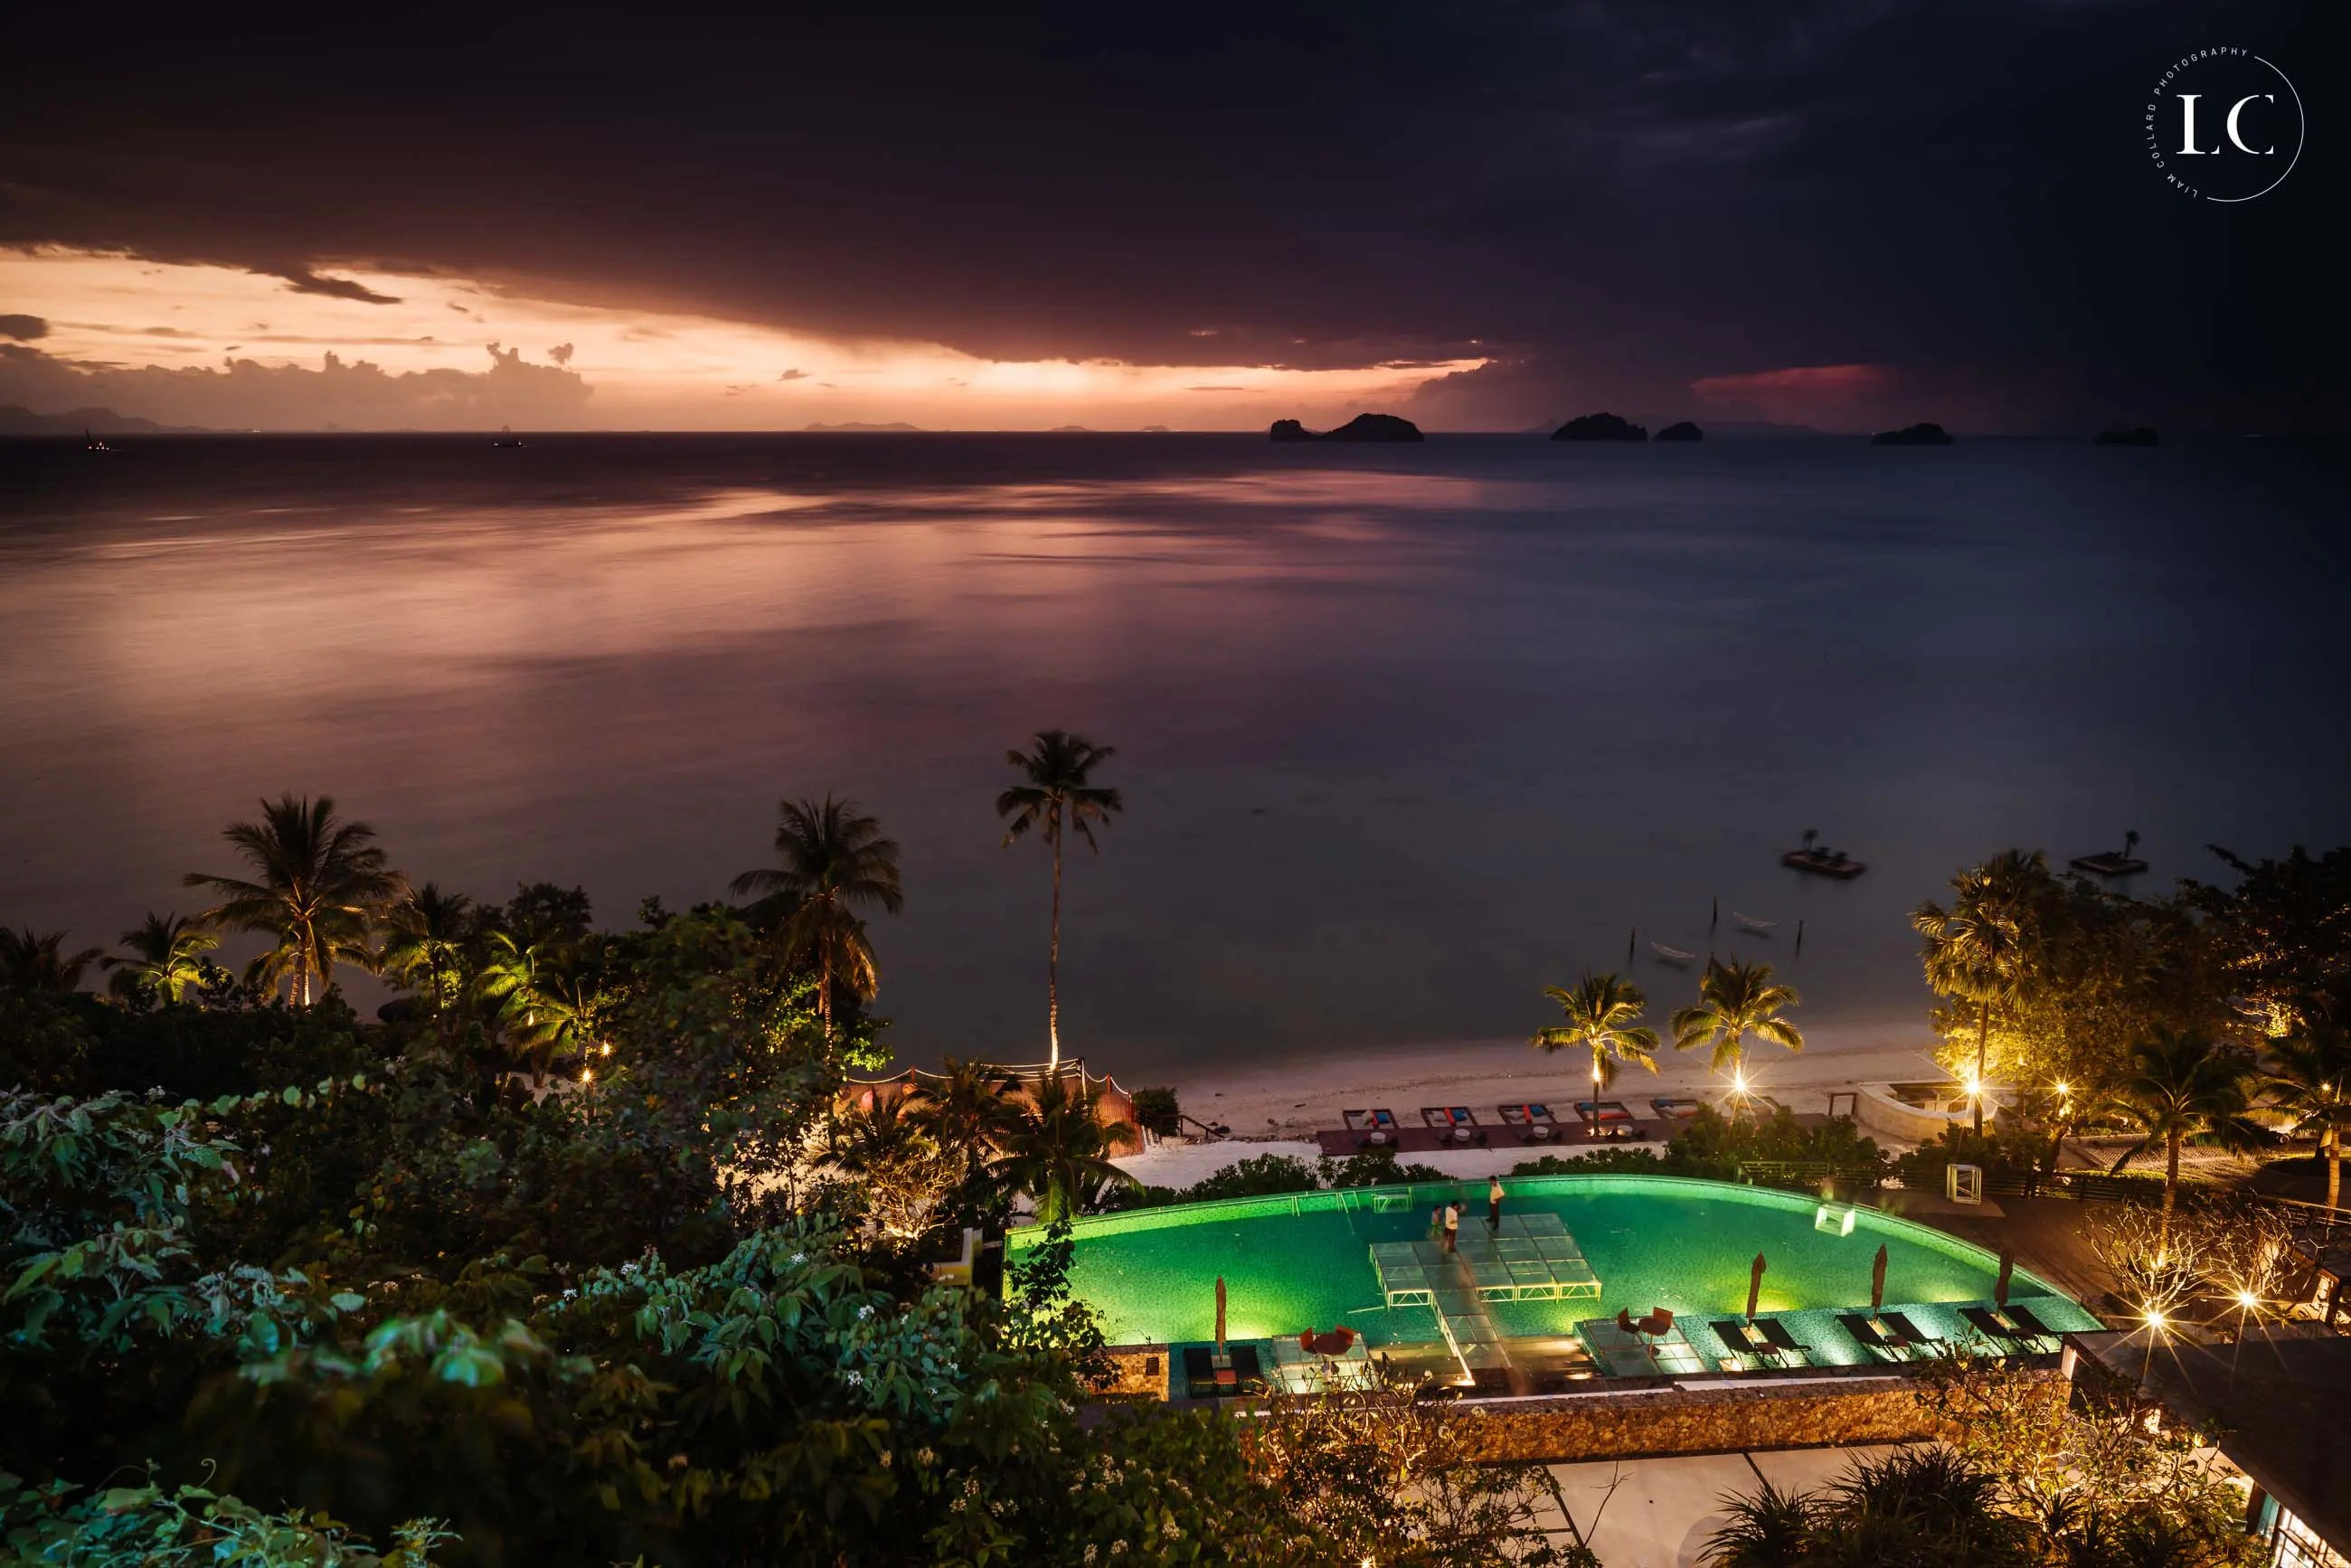 Night time view of luxury resort